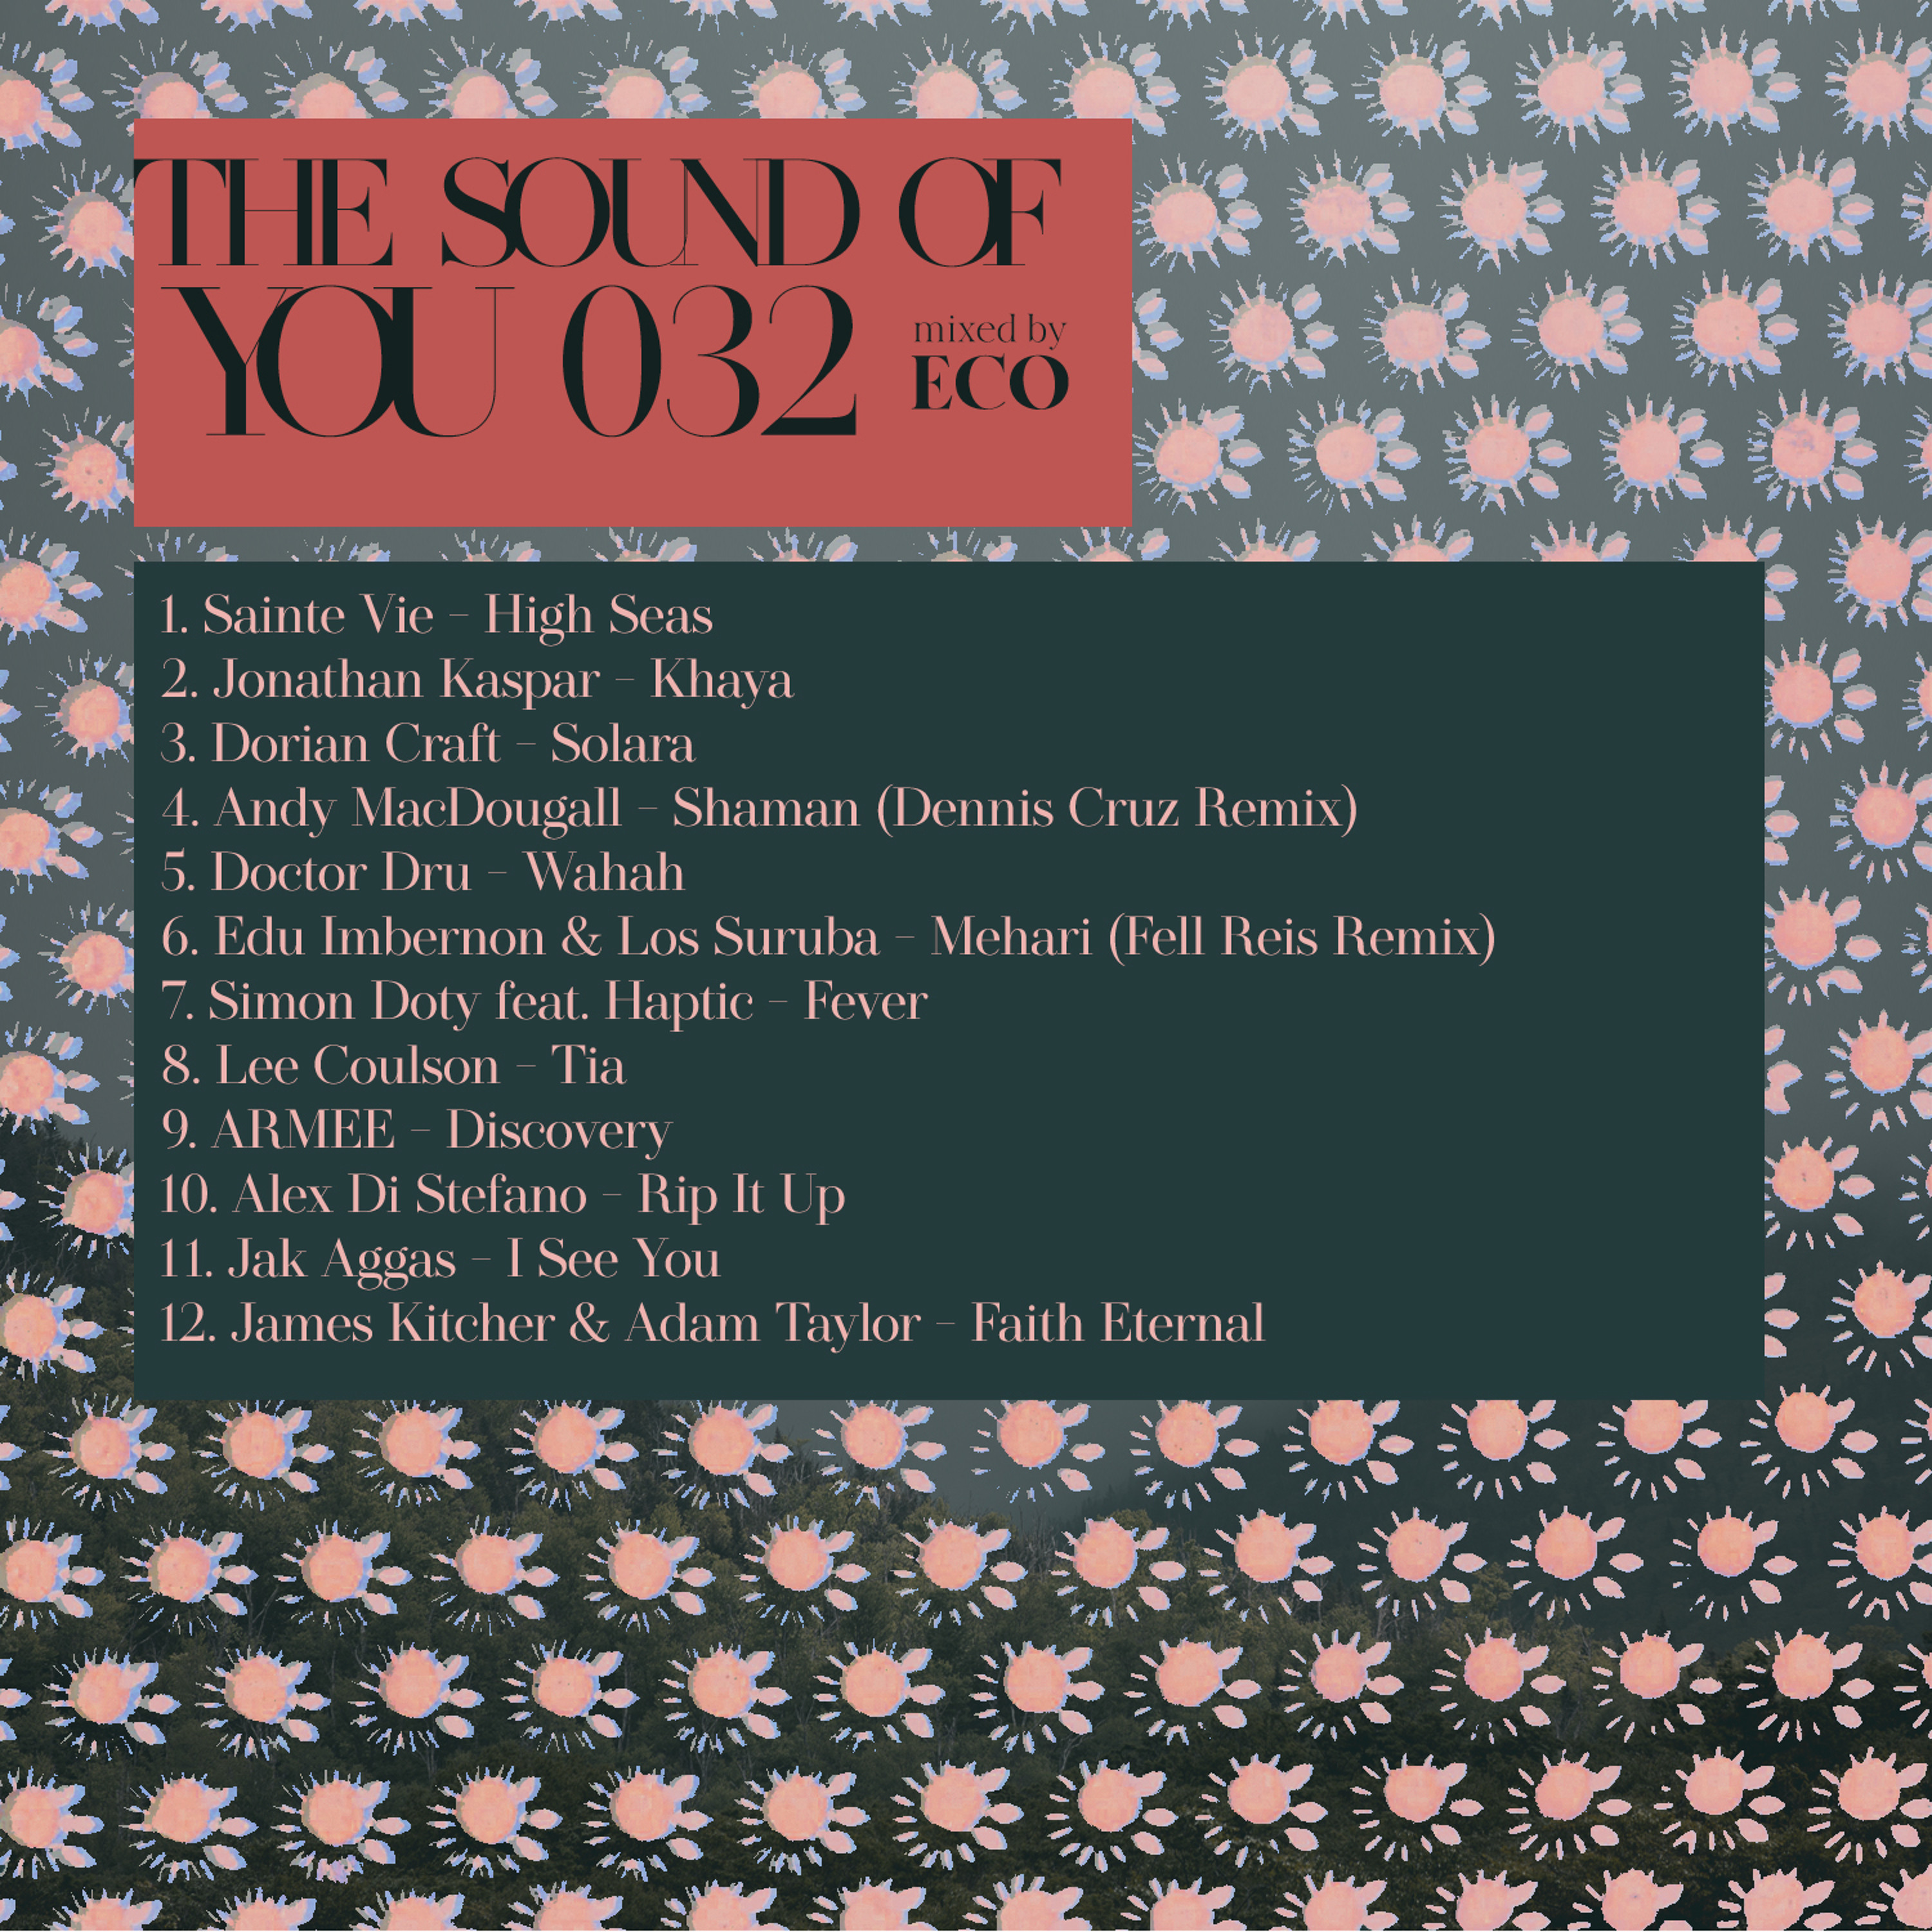 The Sound of You 032